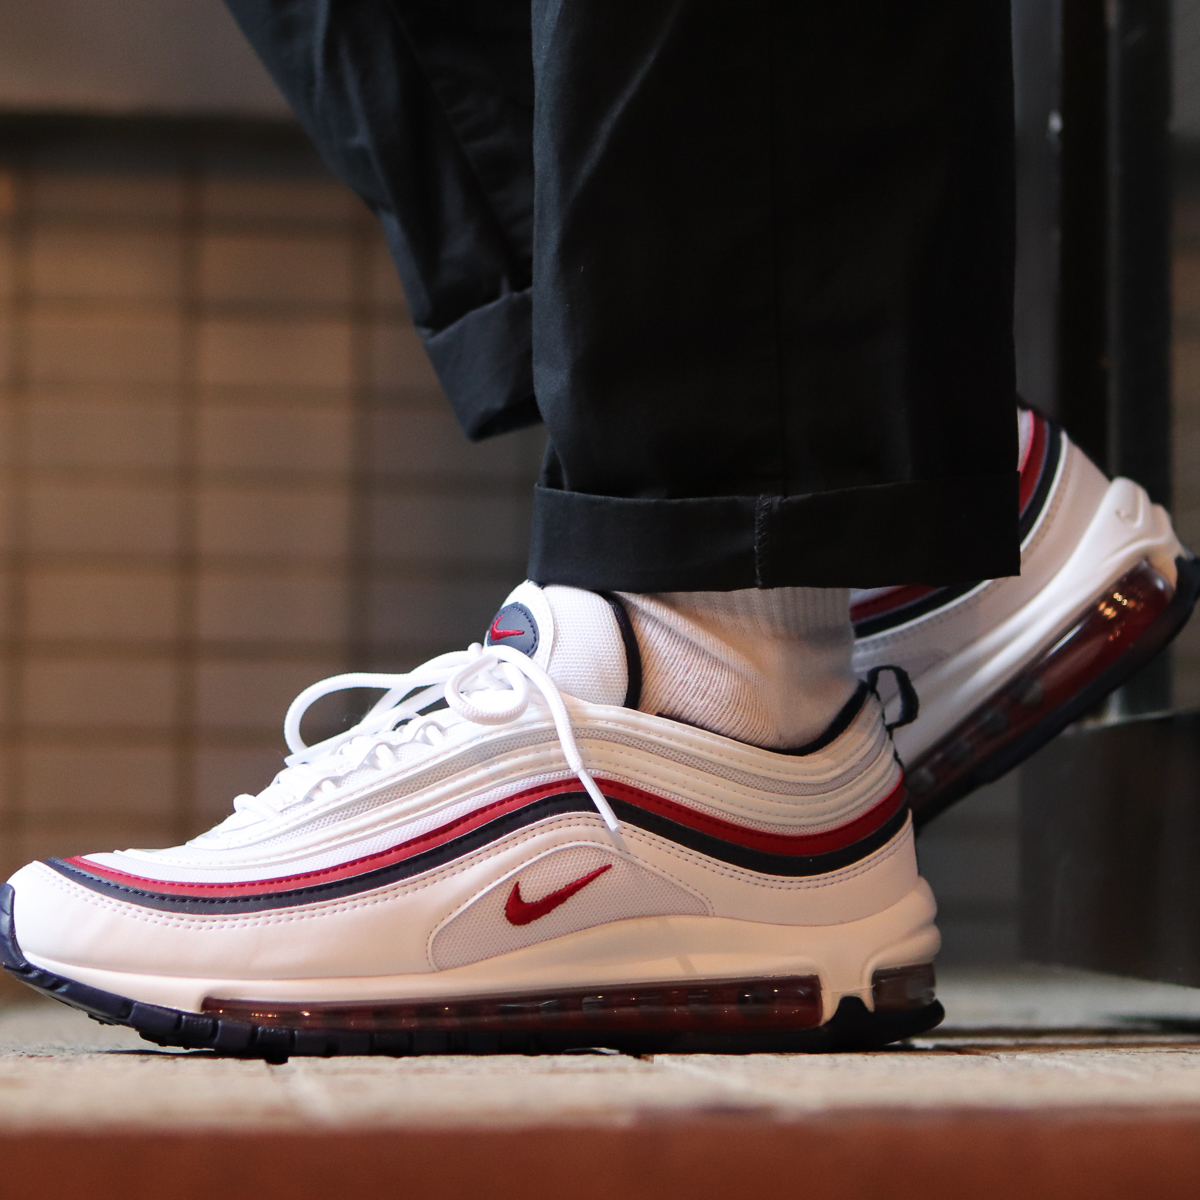 nike air max 97 white and red